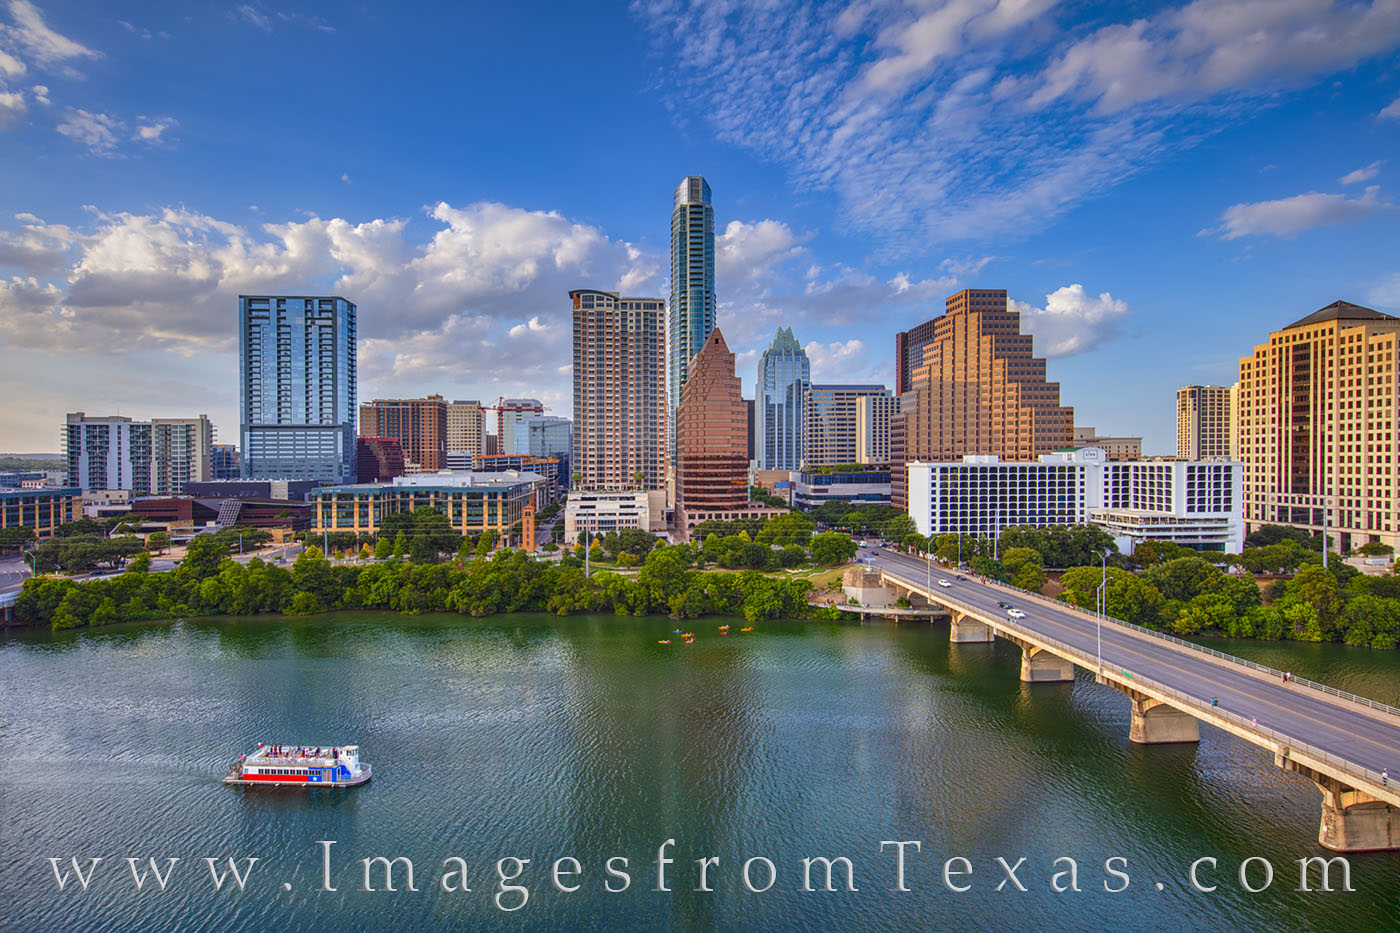 On a late summer afternoon, the Texas Lone Star tourist boat floats along Ladybird Lake. In the distance, the skyline rises into...